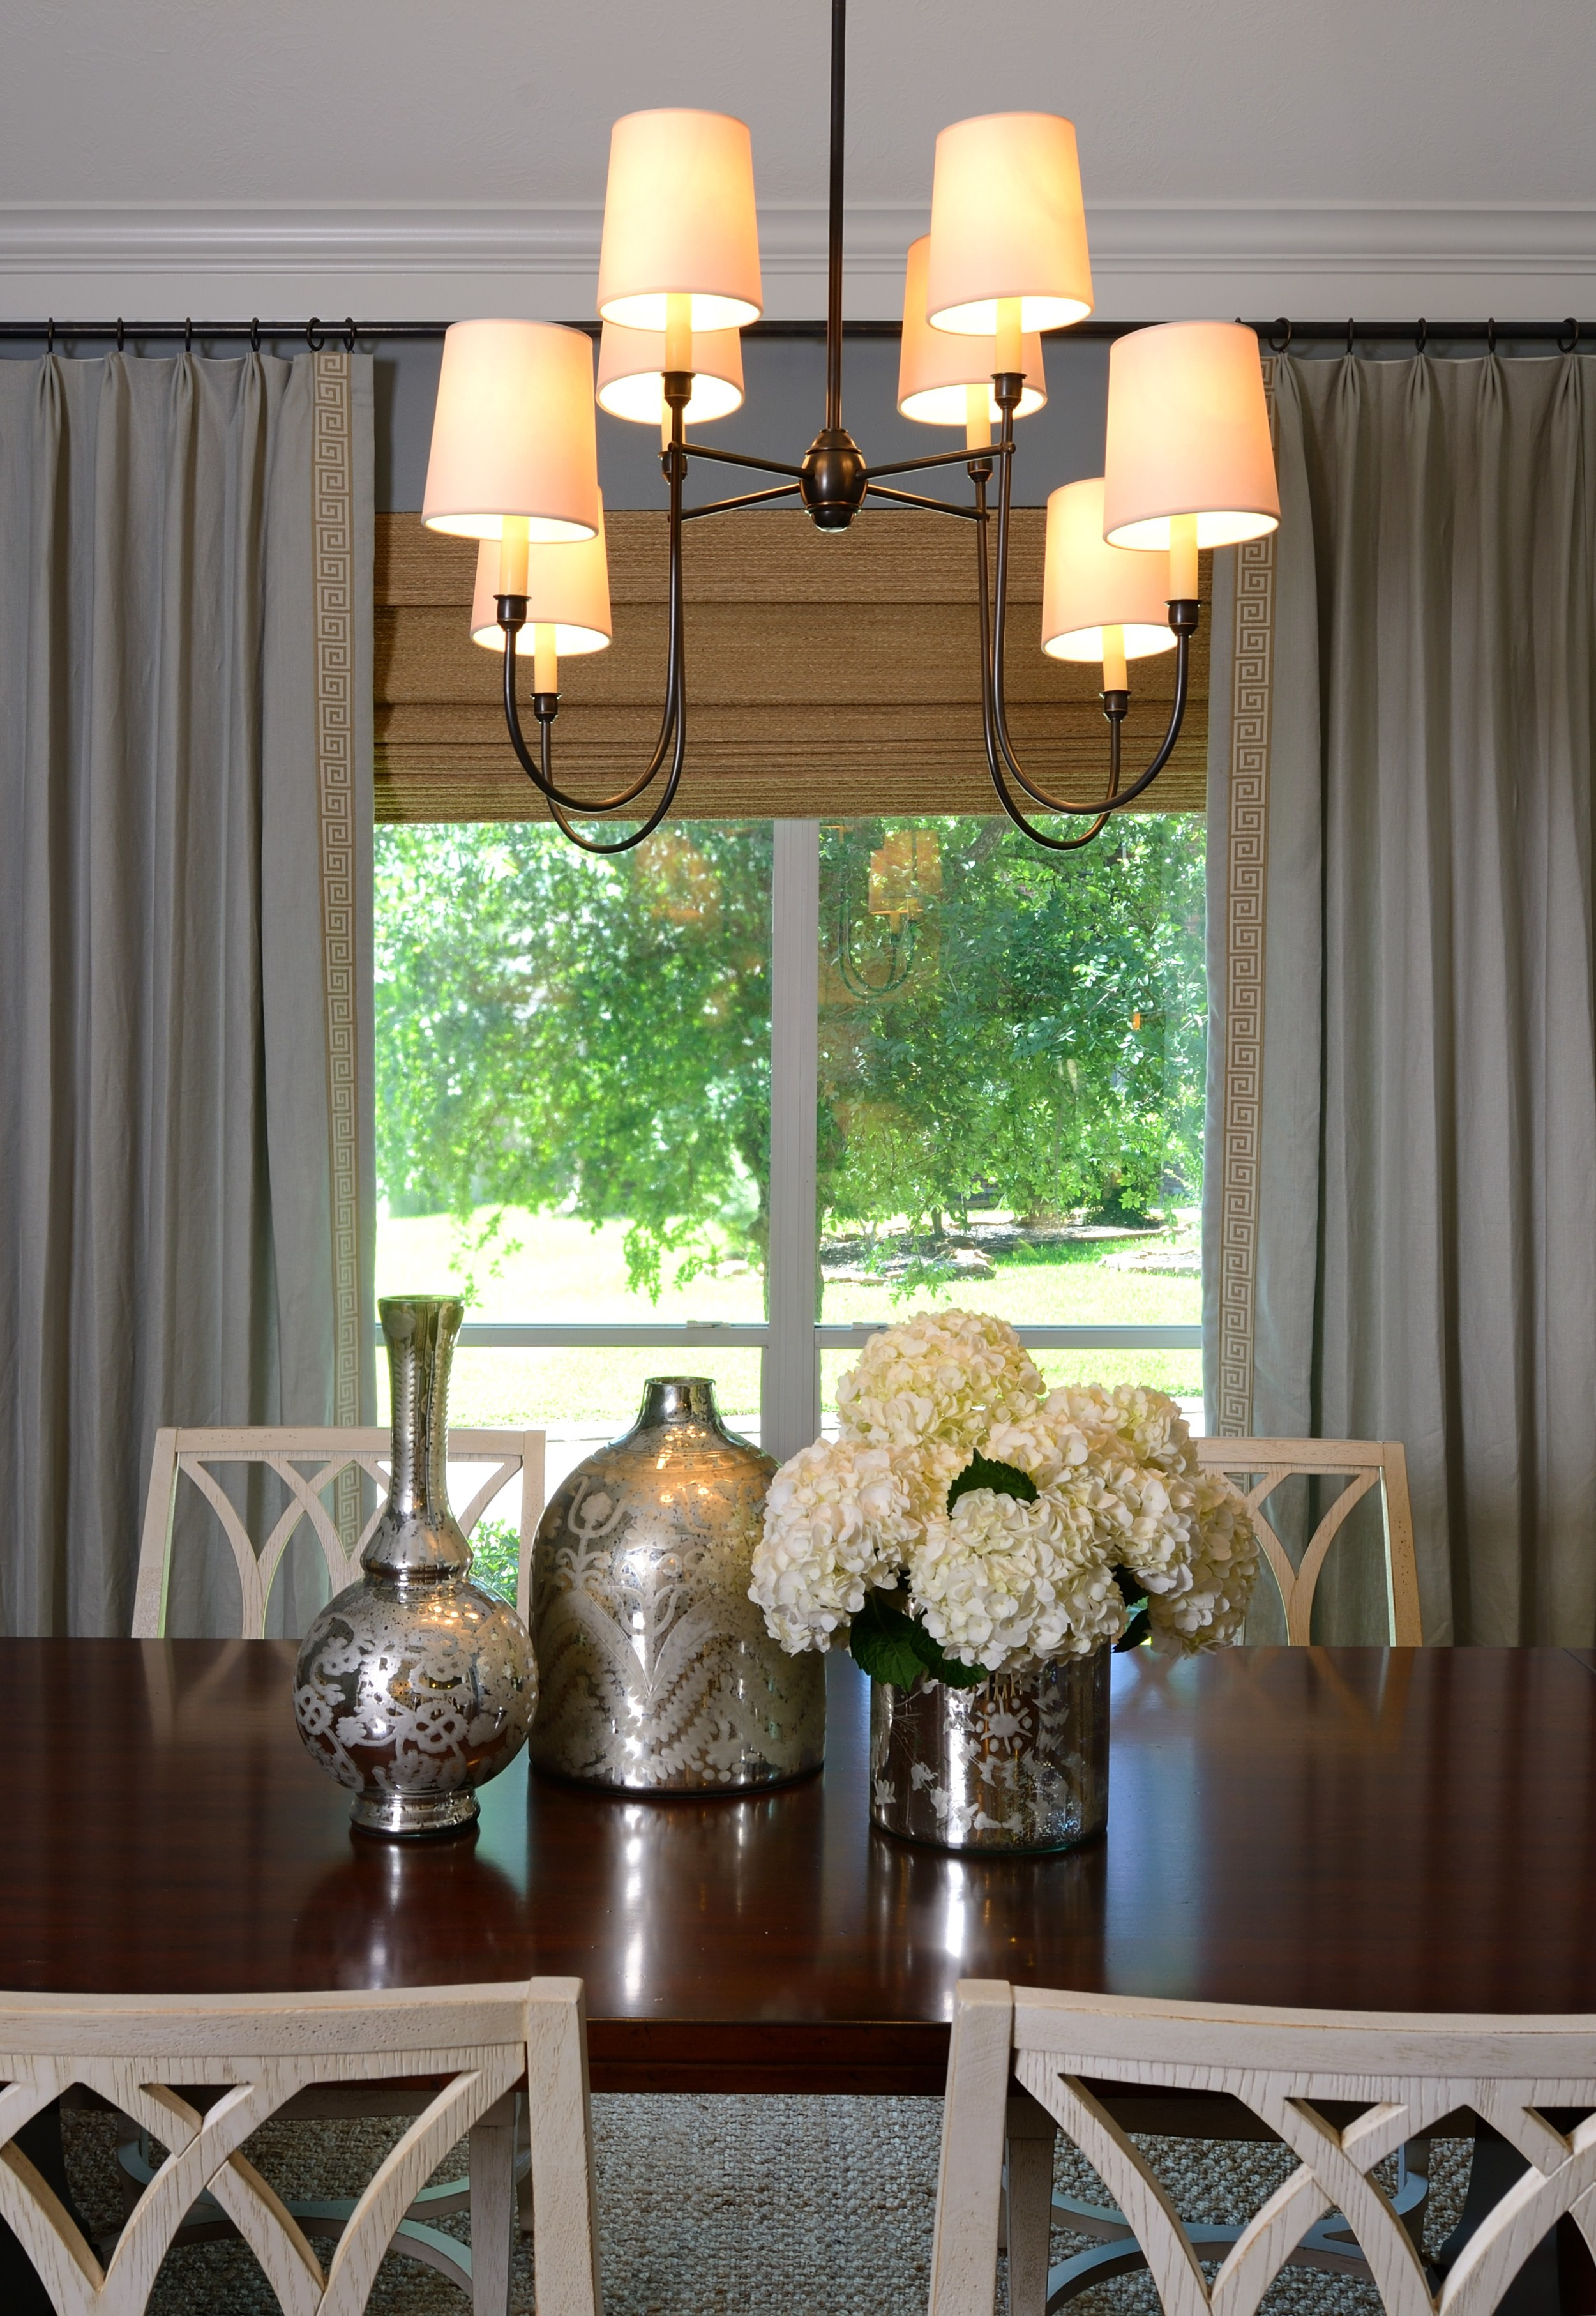 Dining room with custom window treatment and white chairs, Designer: Carla Aston